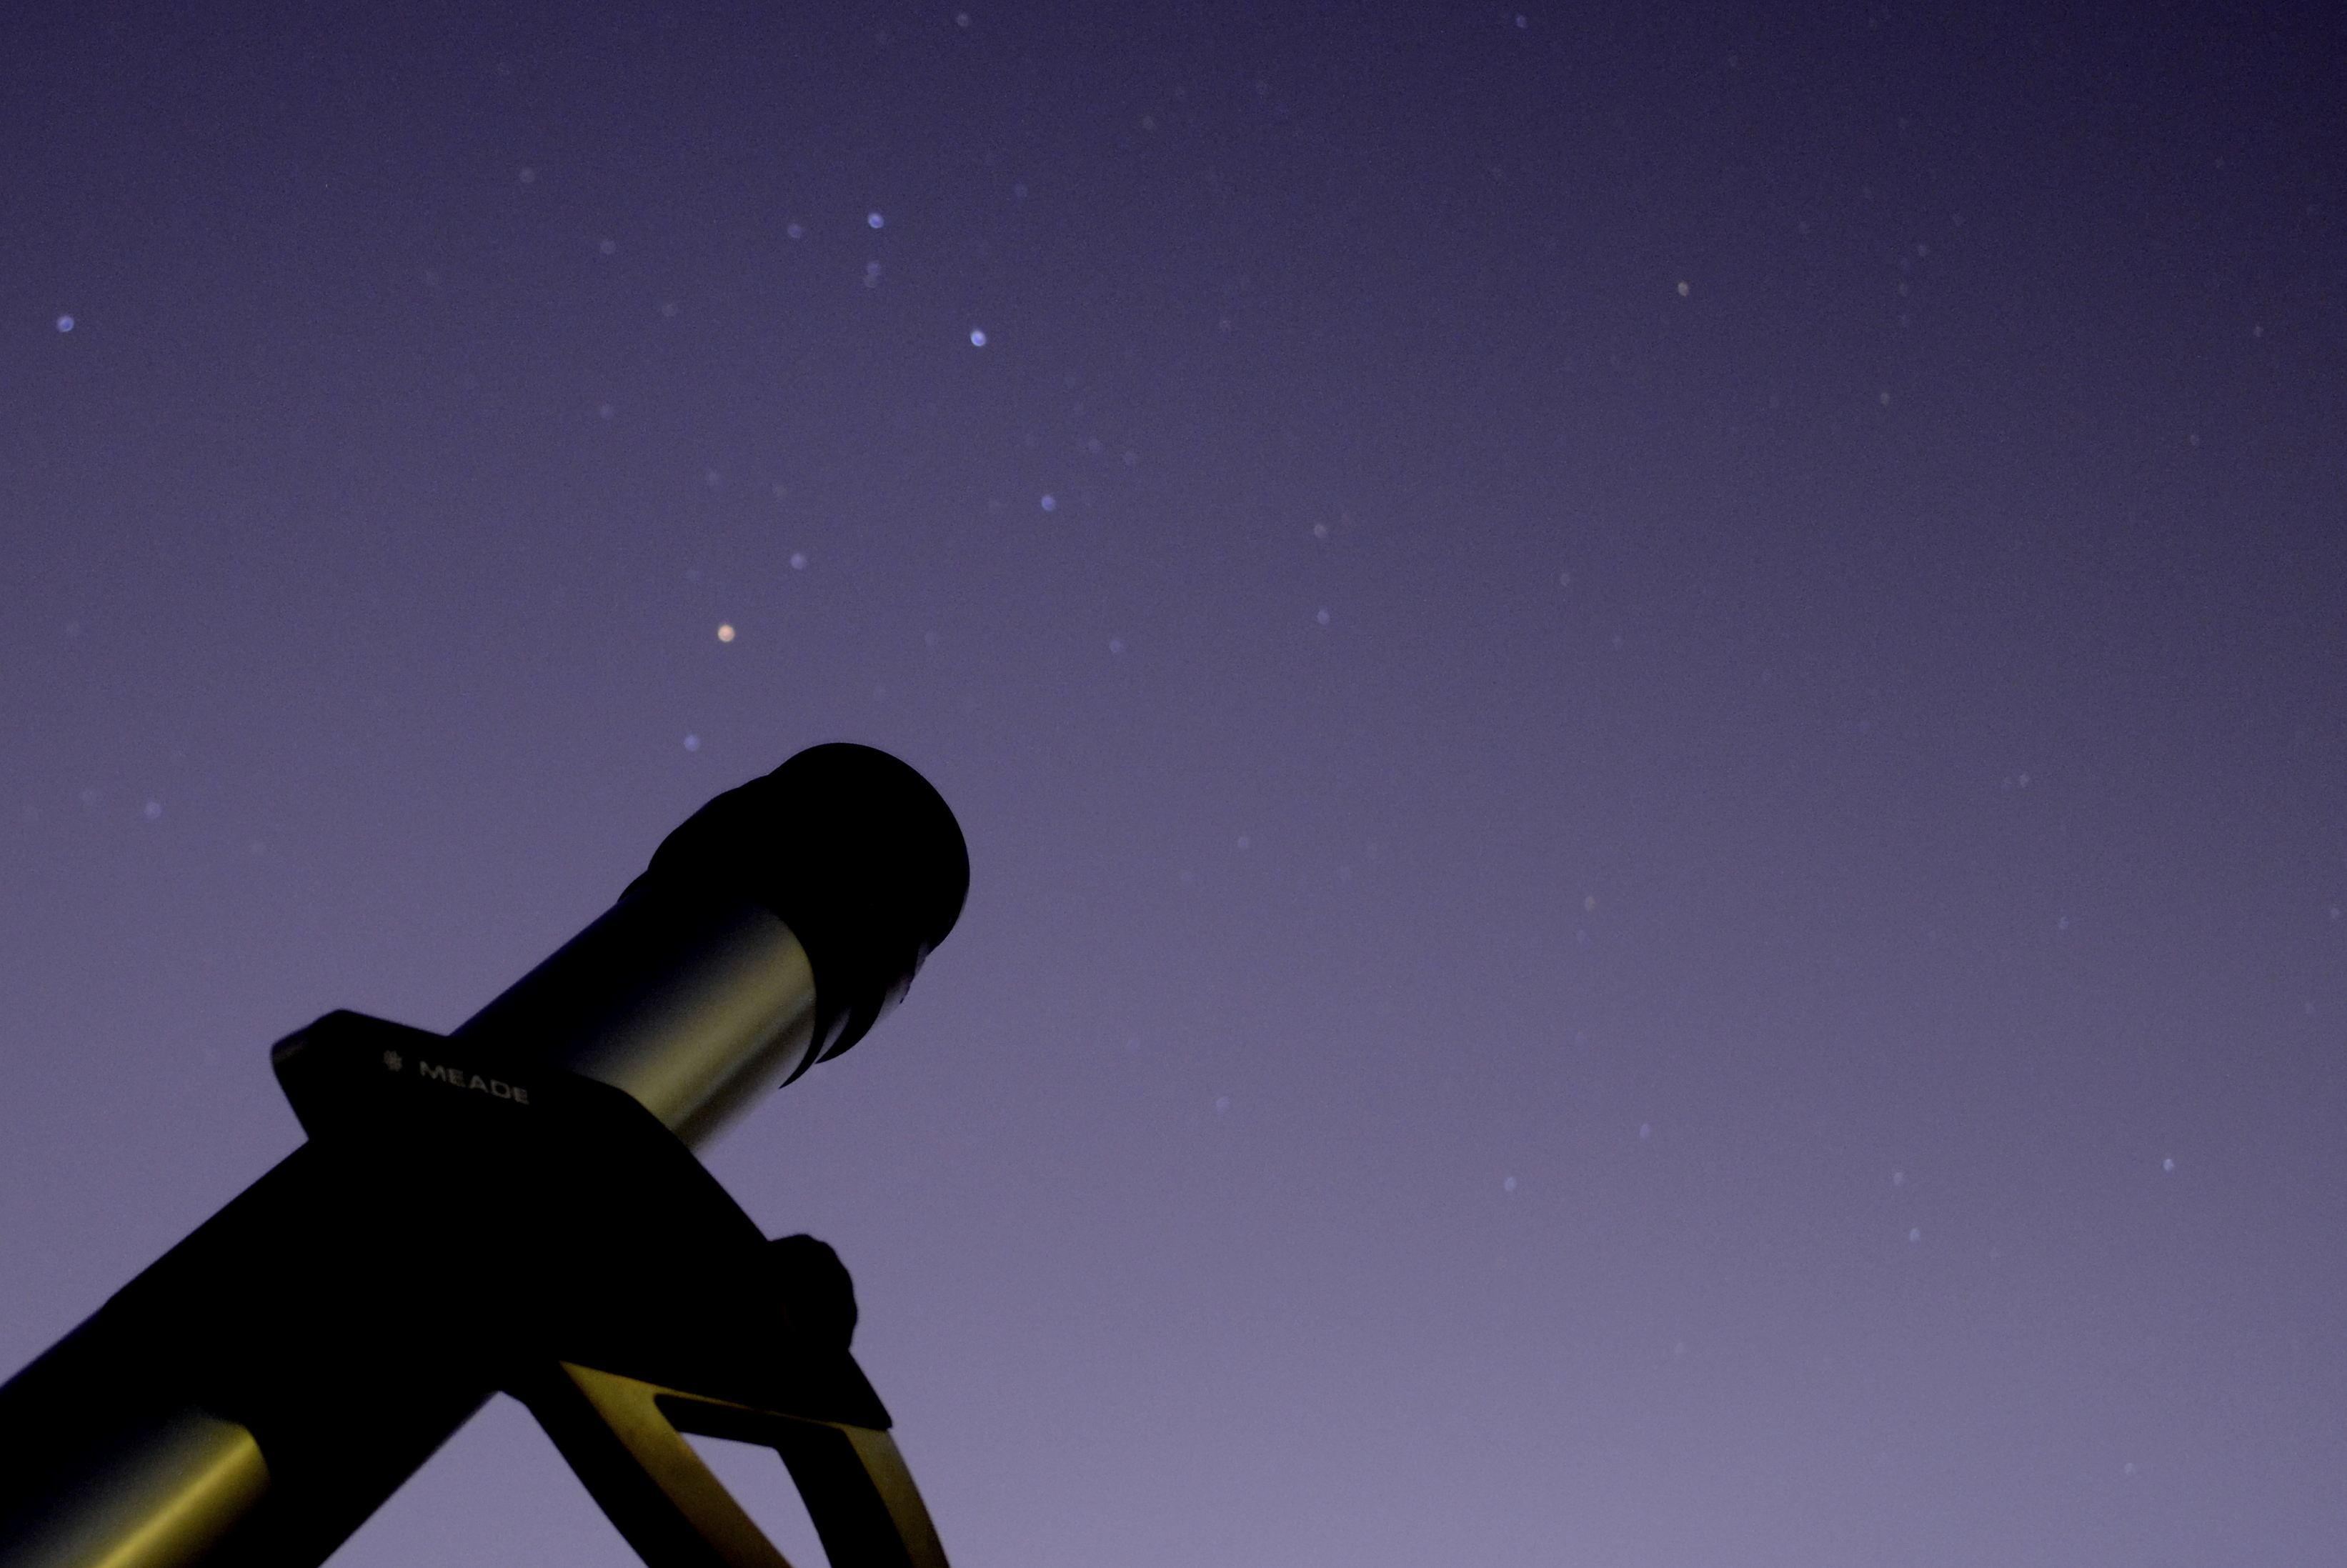 Photo by Author showing a small telescope with the backdrop of stars of the Scorpio constellation taken from Lahore